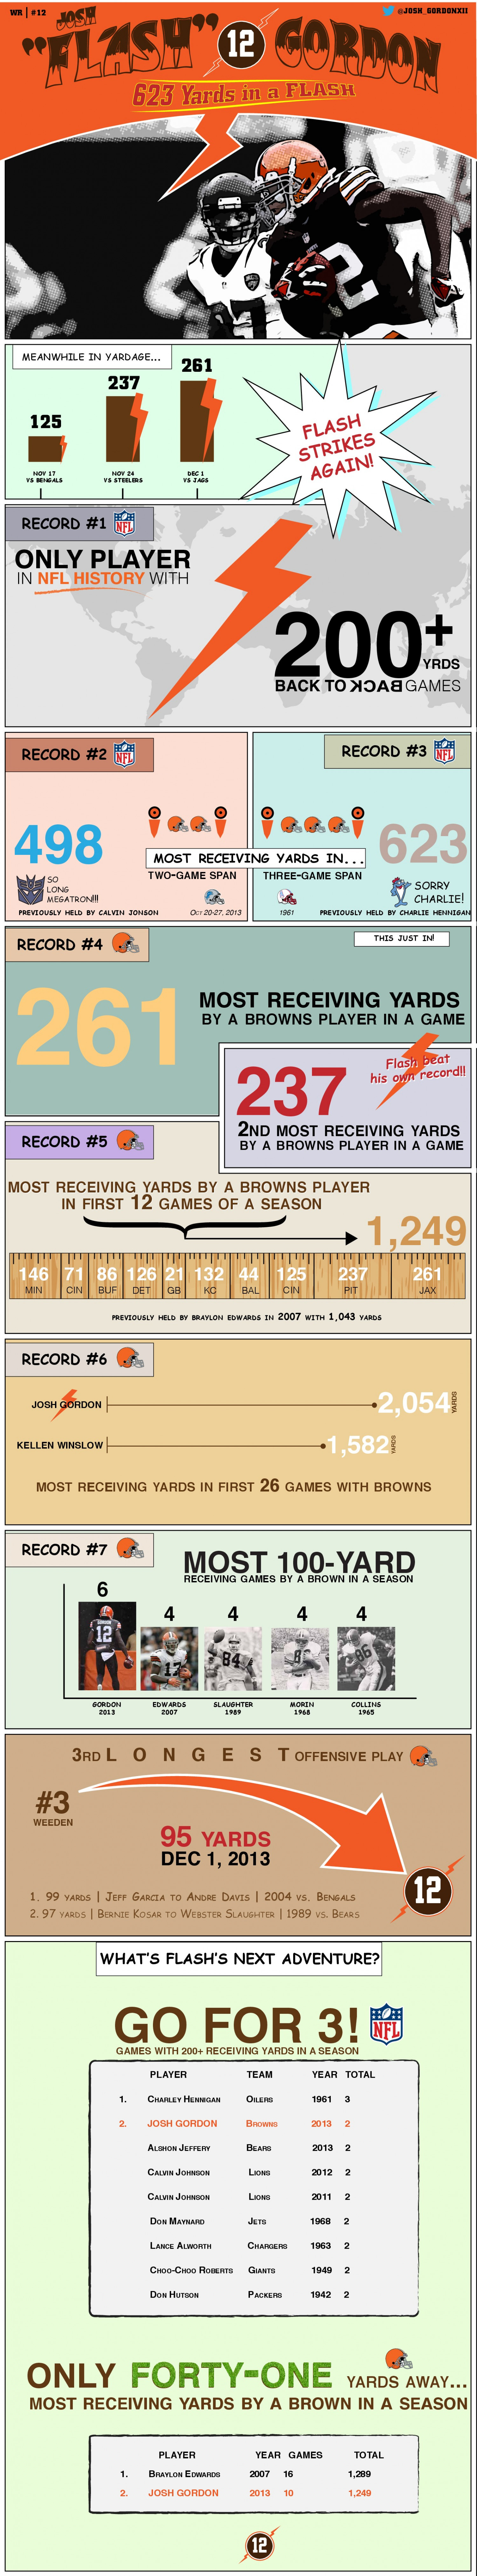 Cleveland Browns Josh Gordon: Breaking Records in a Flash Infographic